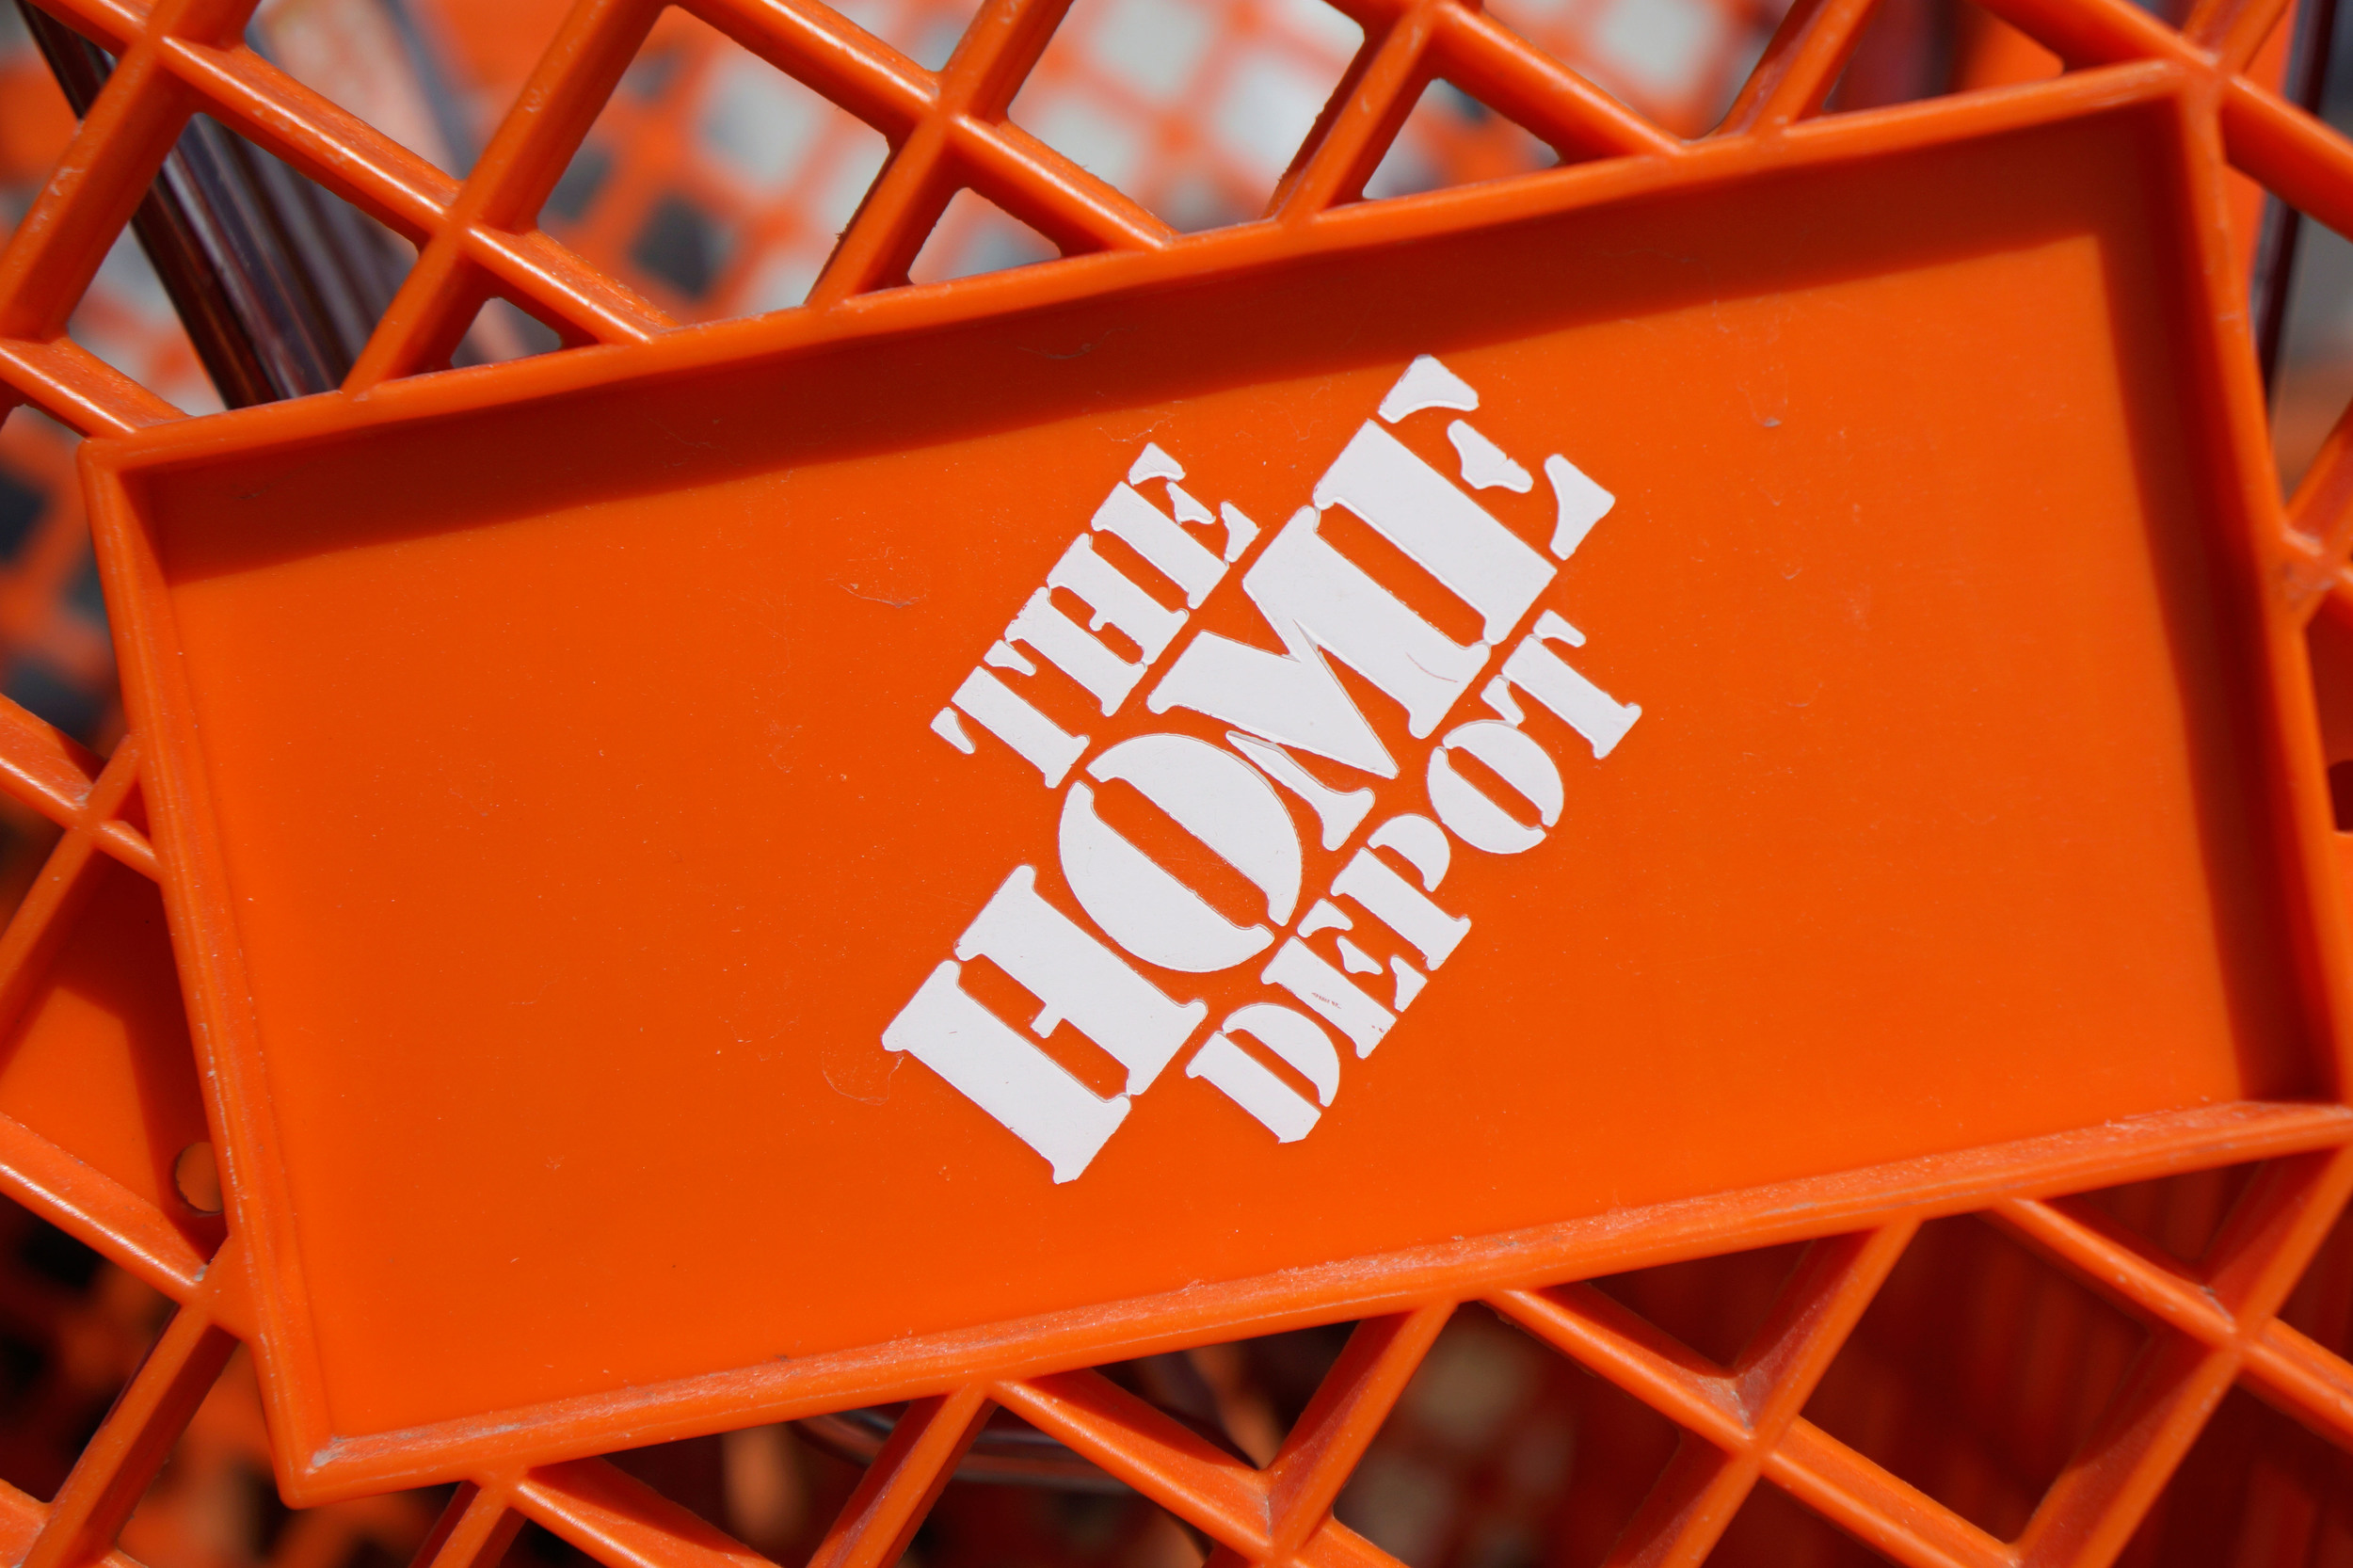 Home Depot On Fair: These Are The 10 Highest-Paying Companies For Sales Associates